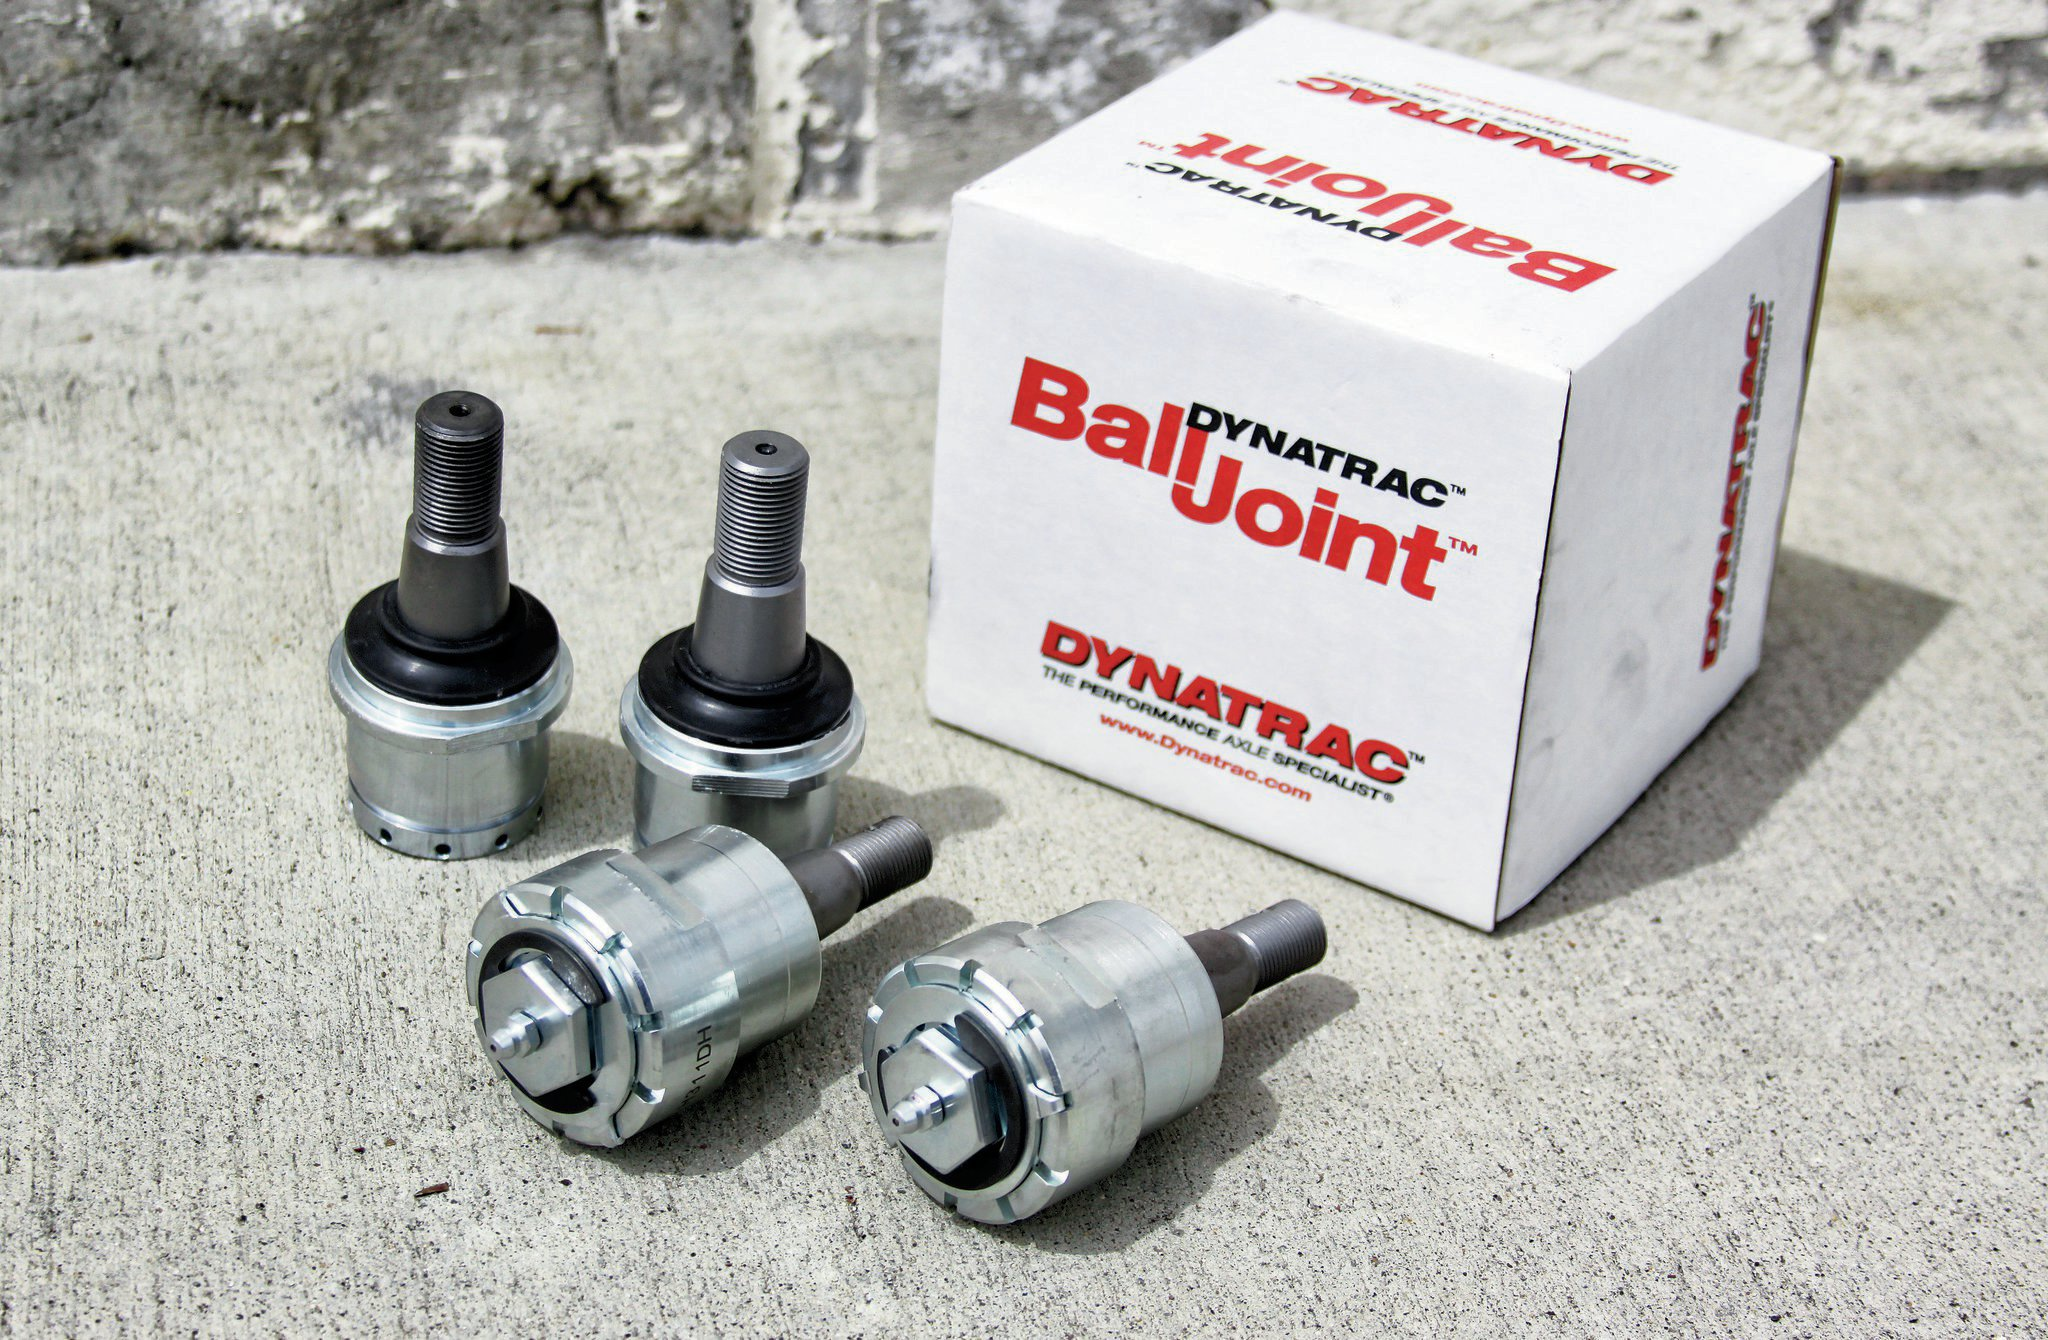 Dynatrac Ball Joints are engineered to be stronger than OE ball joints, serviceable, and rebuildable. They're constructed from heat-treated, high-strength billet steel and feature strong heat-treated chromoly steel stems.